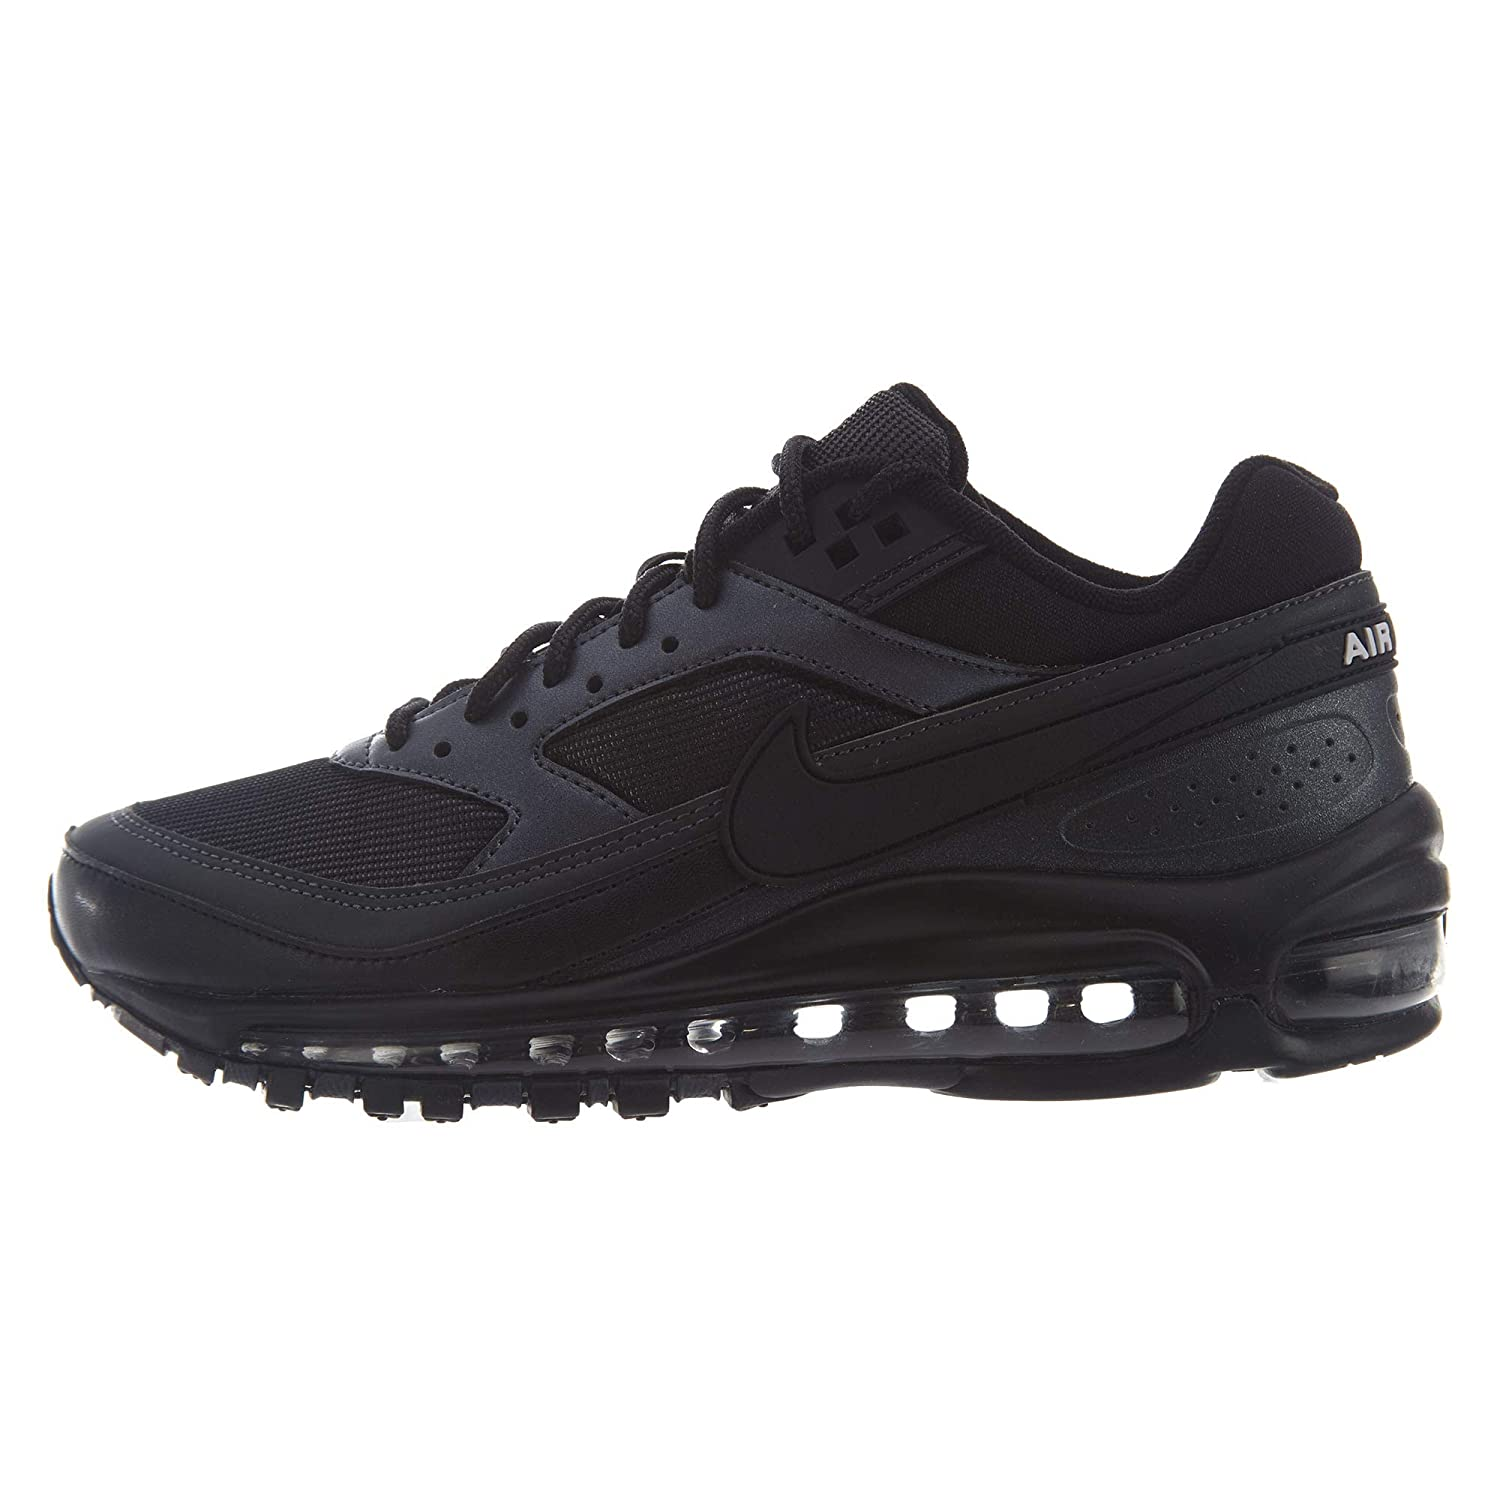 new styles 755a7 78b96 Amazon.com   Nike Air Max 90 Mens Running Shoes   Road Running